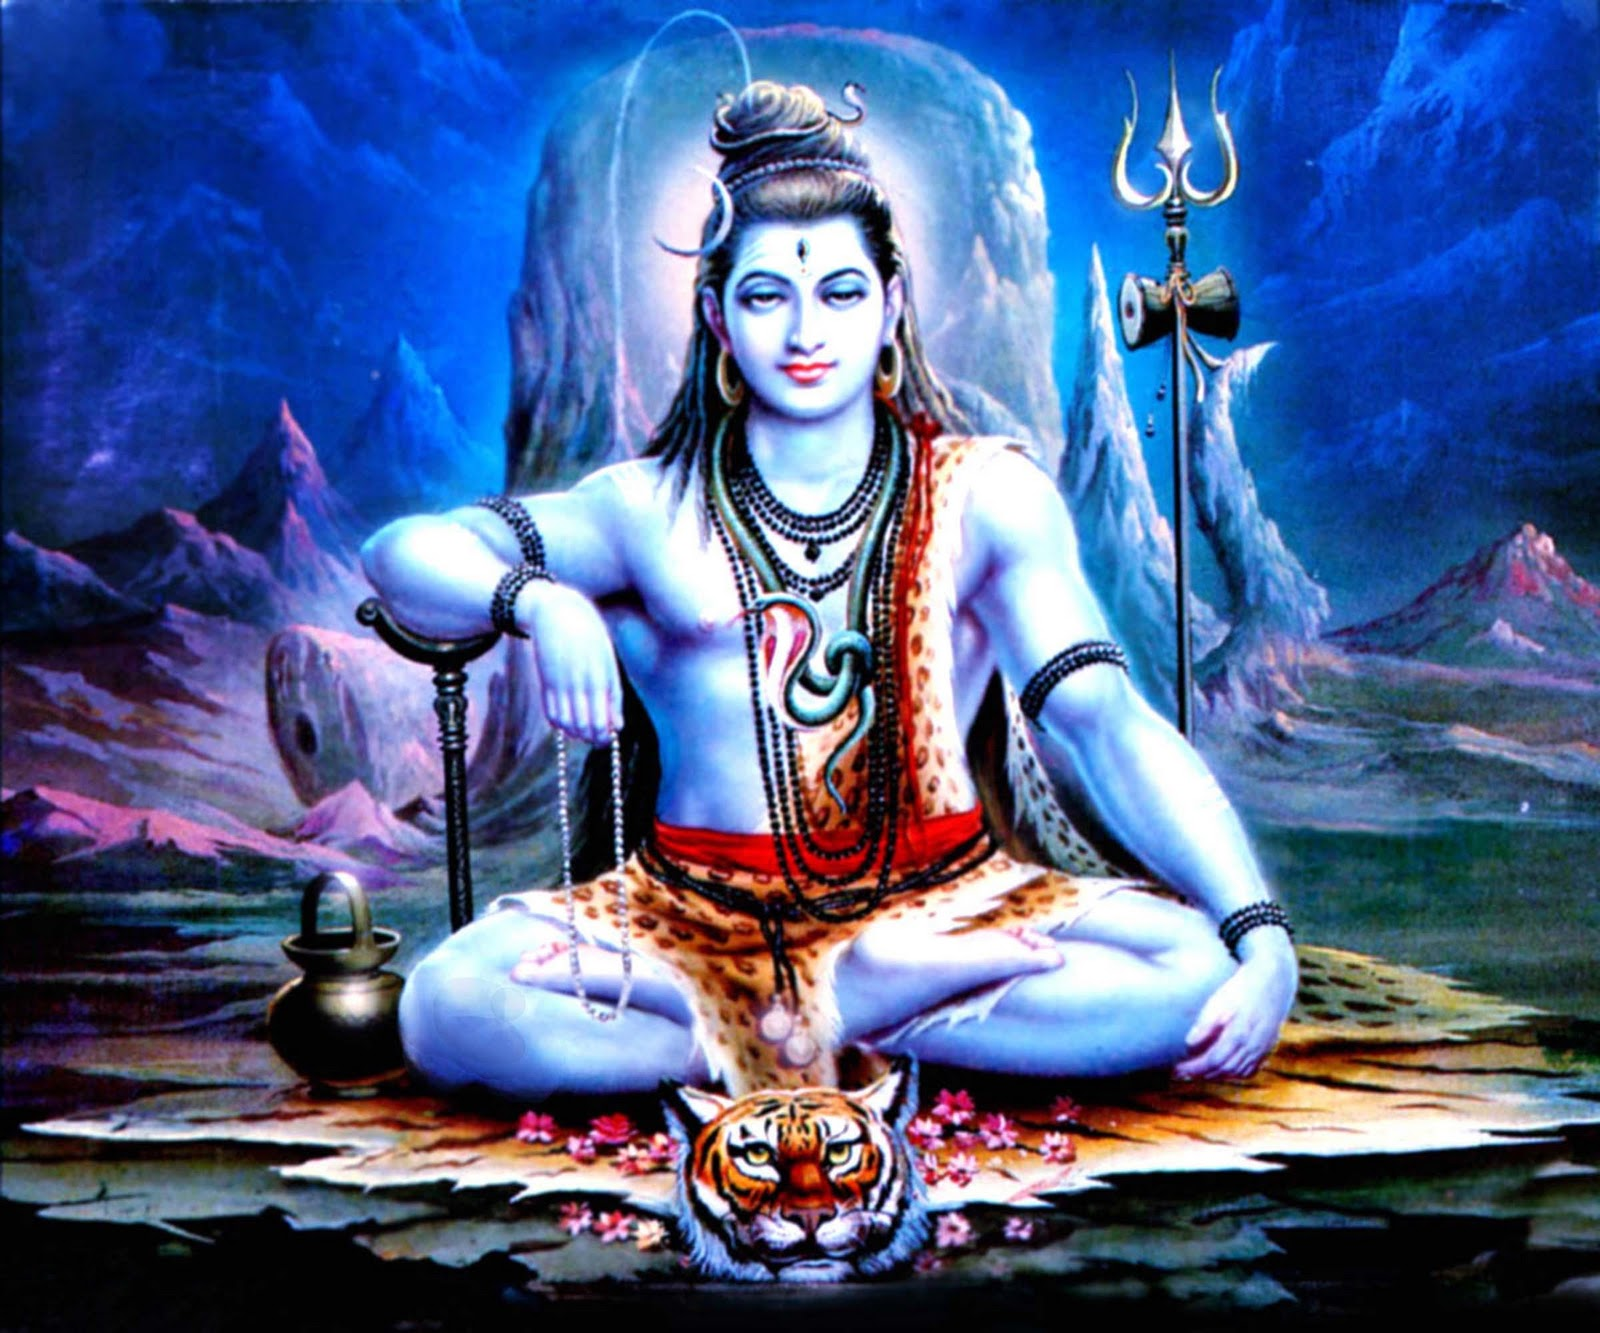 Shiva Wallpaper In Hd: Lord Shiva Wallpaper